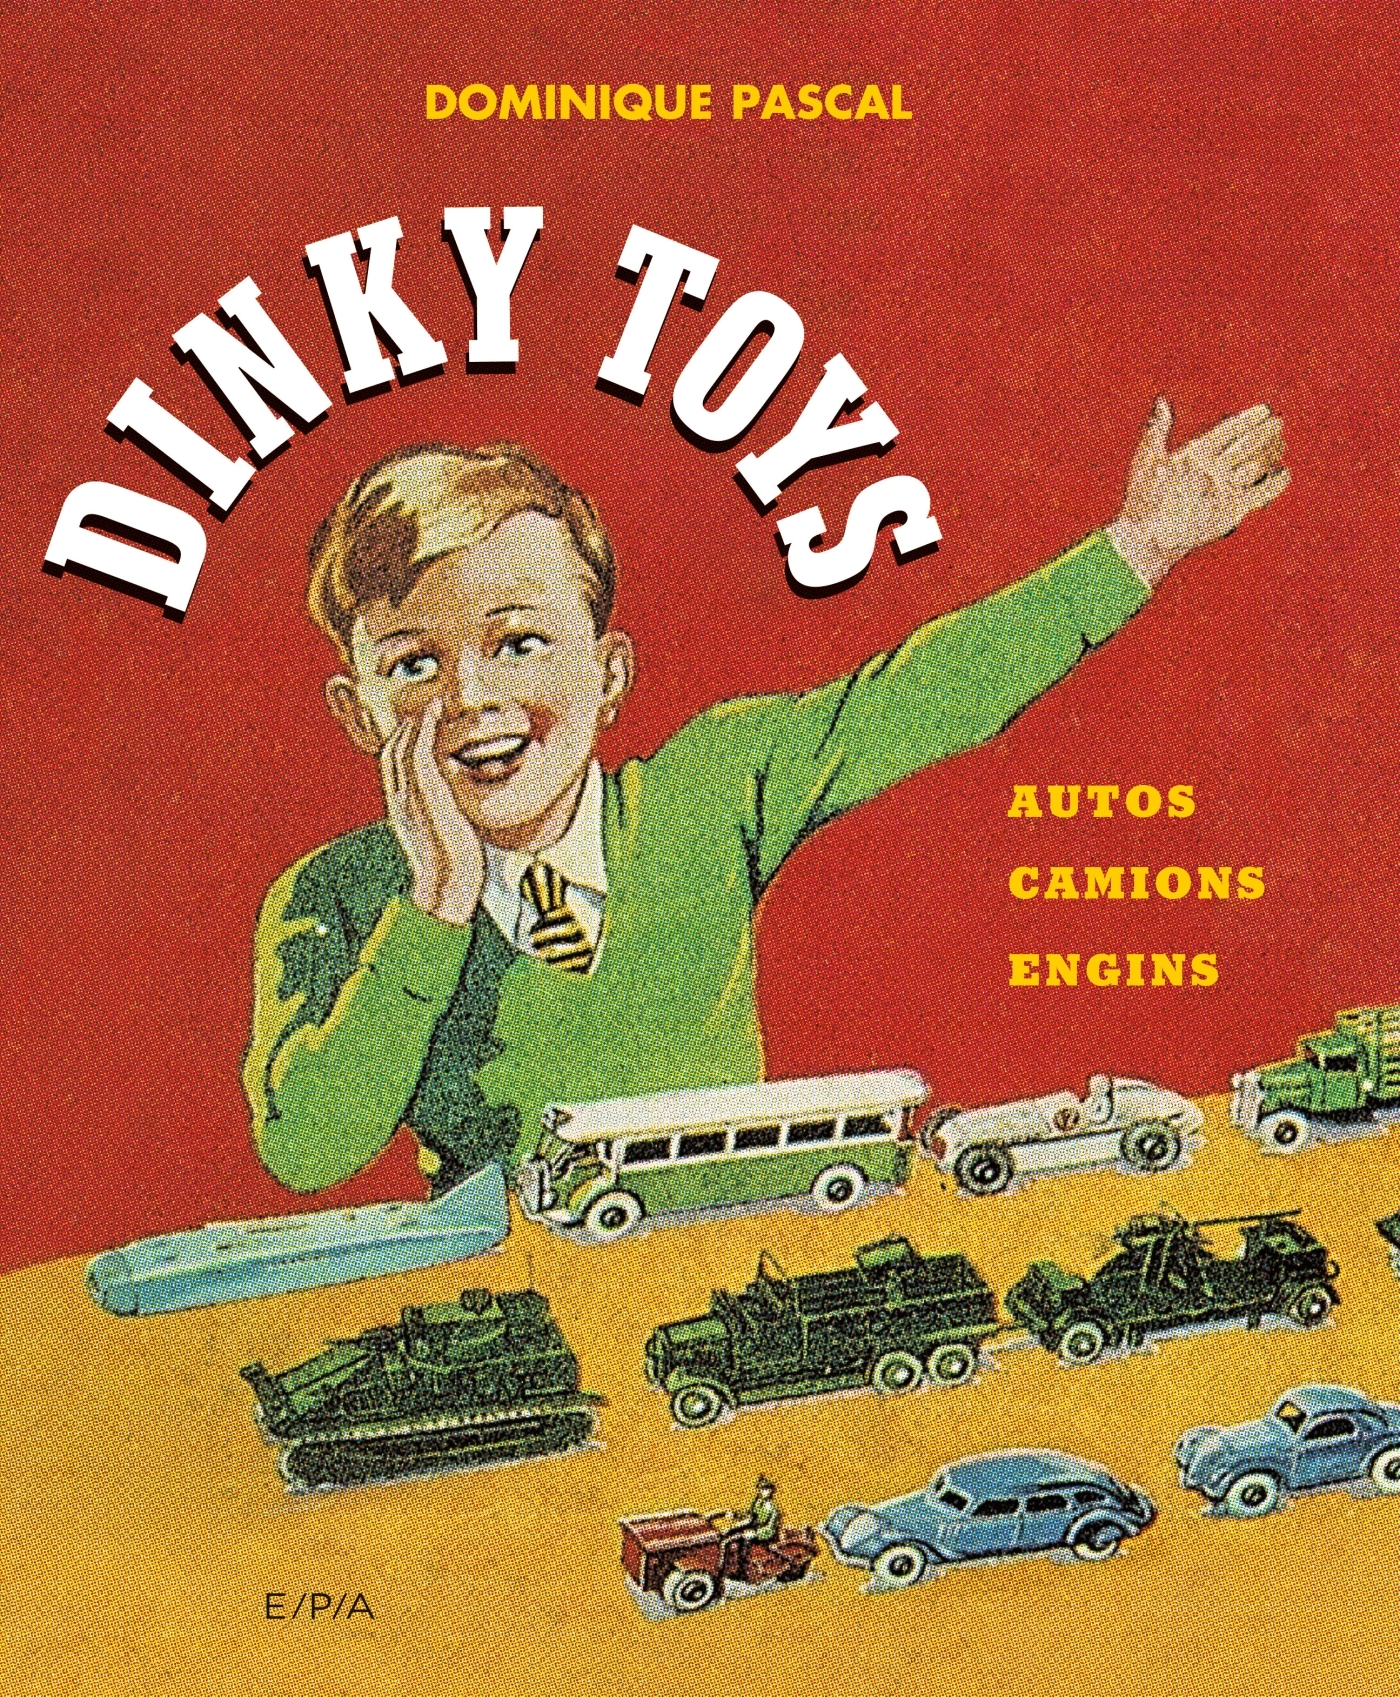 DINKY TOYS - AUTOS, CAMIONS, ENGINS